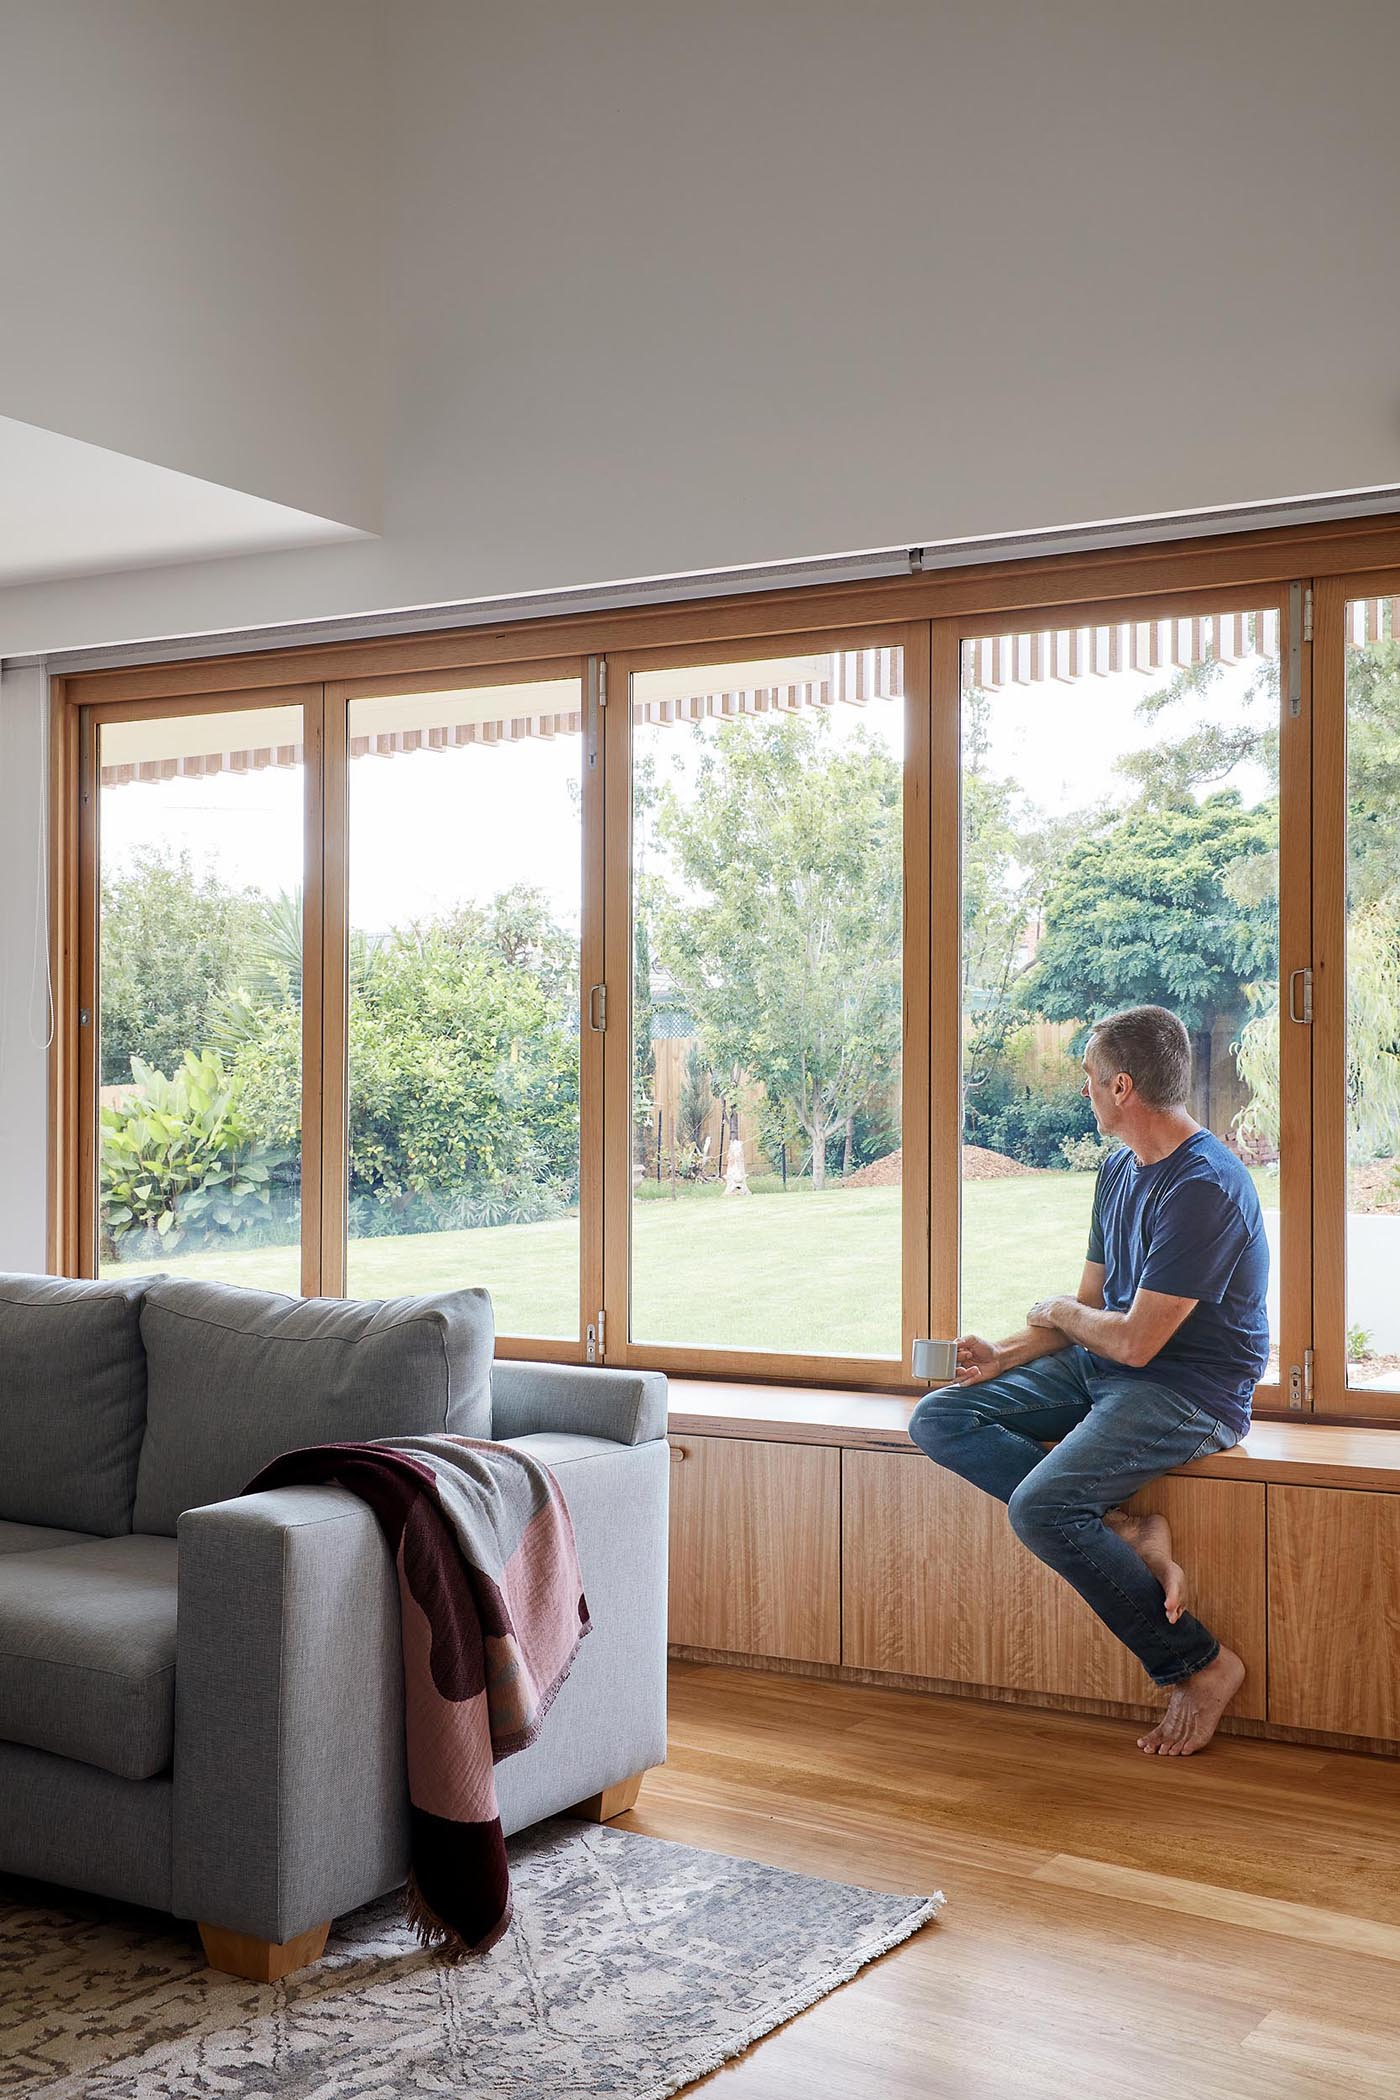 A modern living room has a bench below a series of windows that open to connect the interior with the bench on the other side of the windows.